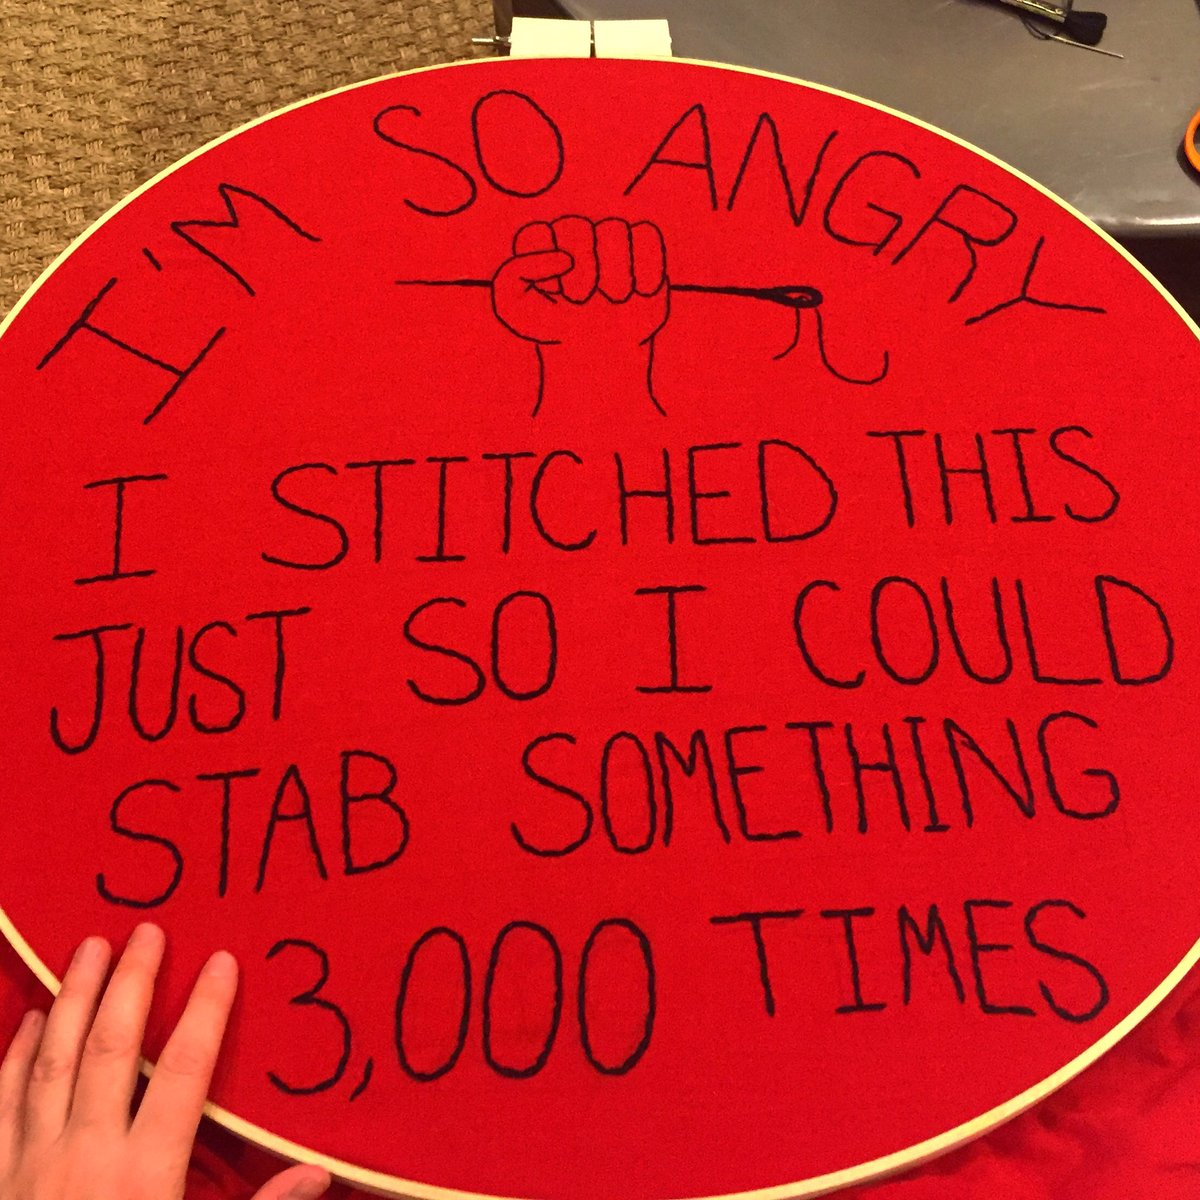 And @womensmarchchi embroidered protest sign is hooped and ready! @womensmarch #notmypresident